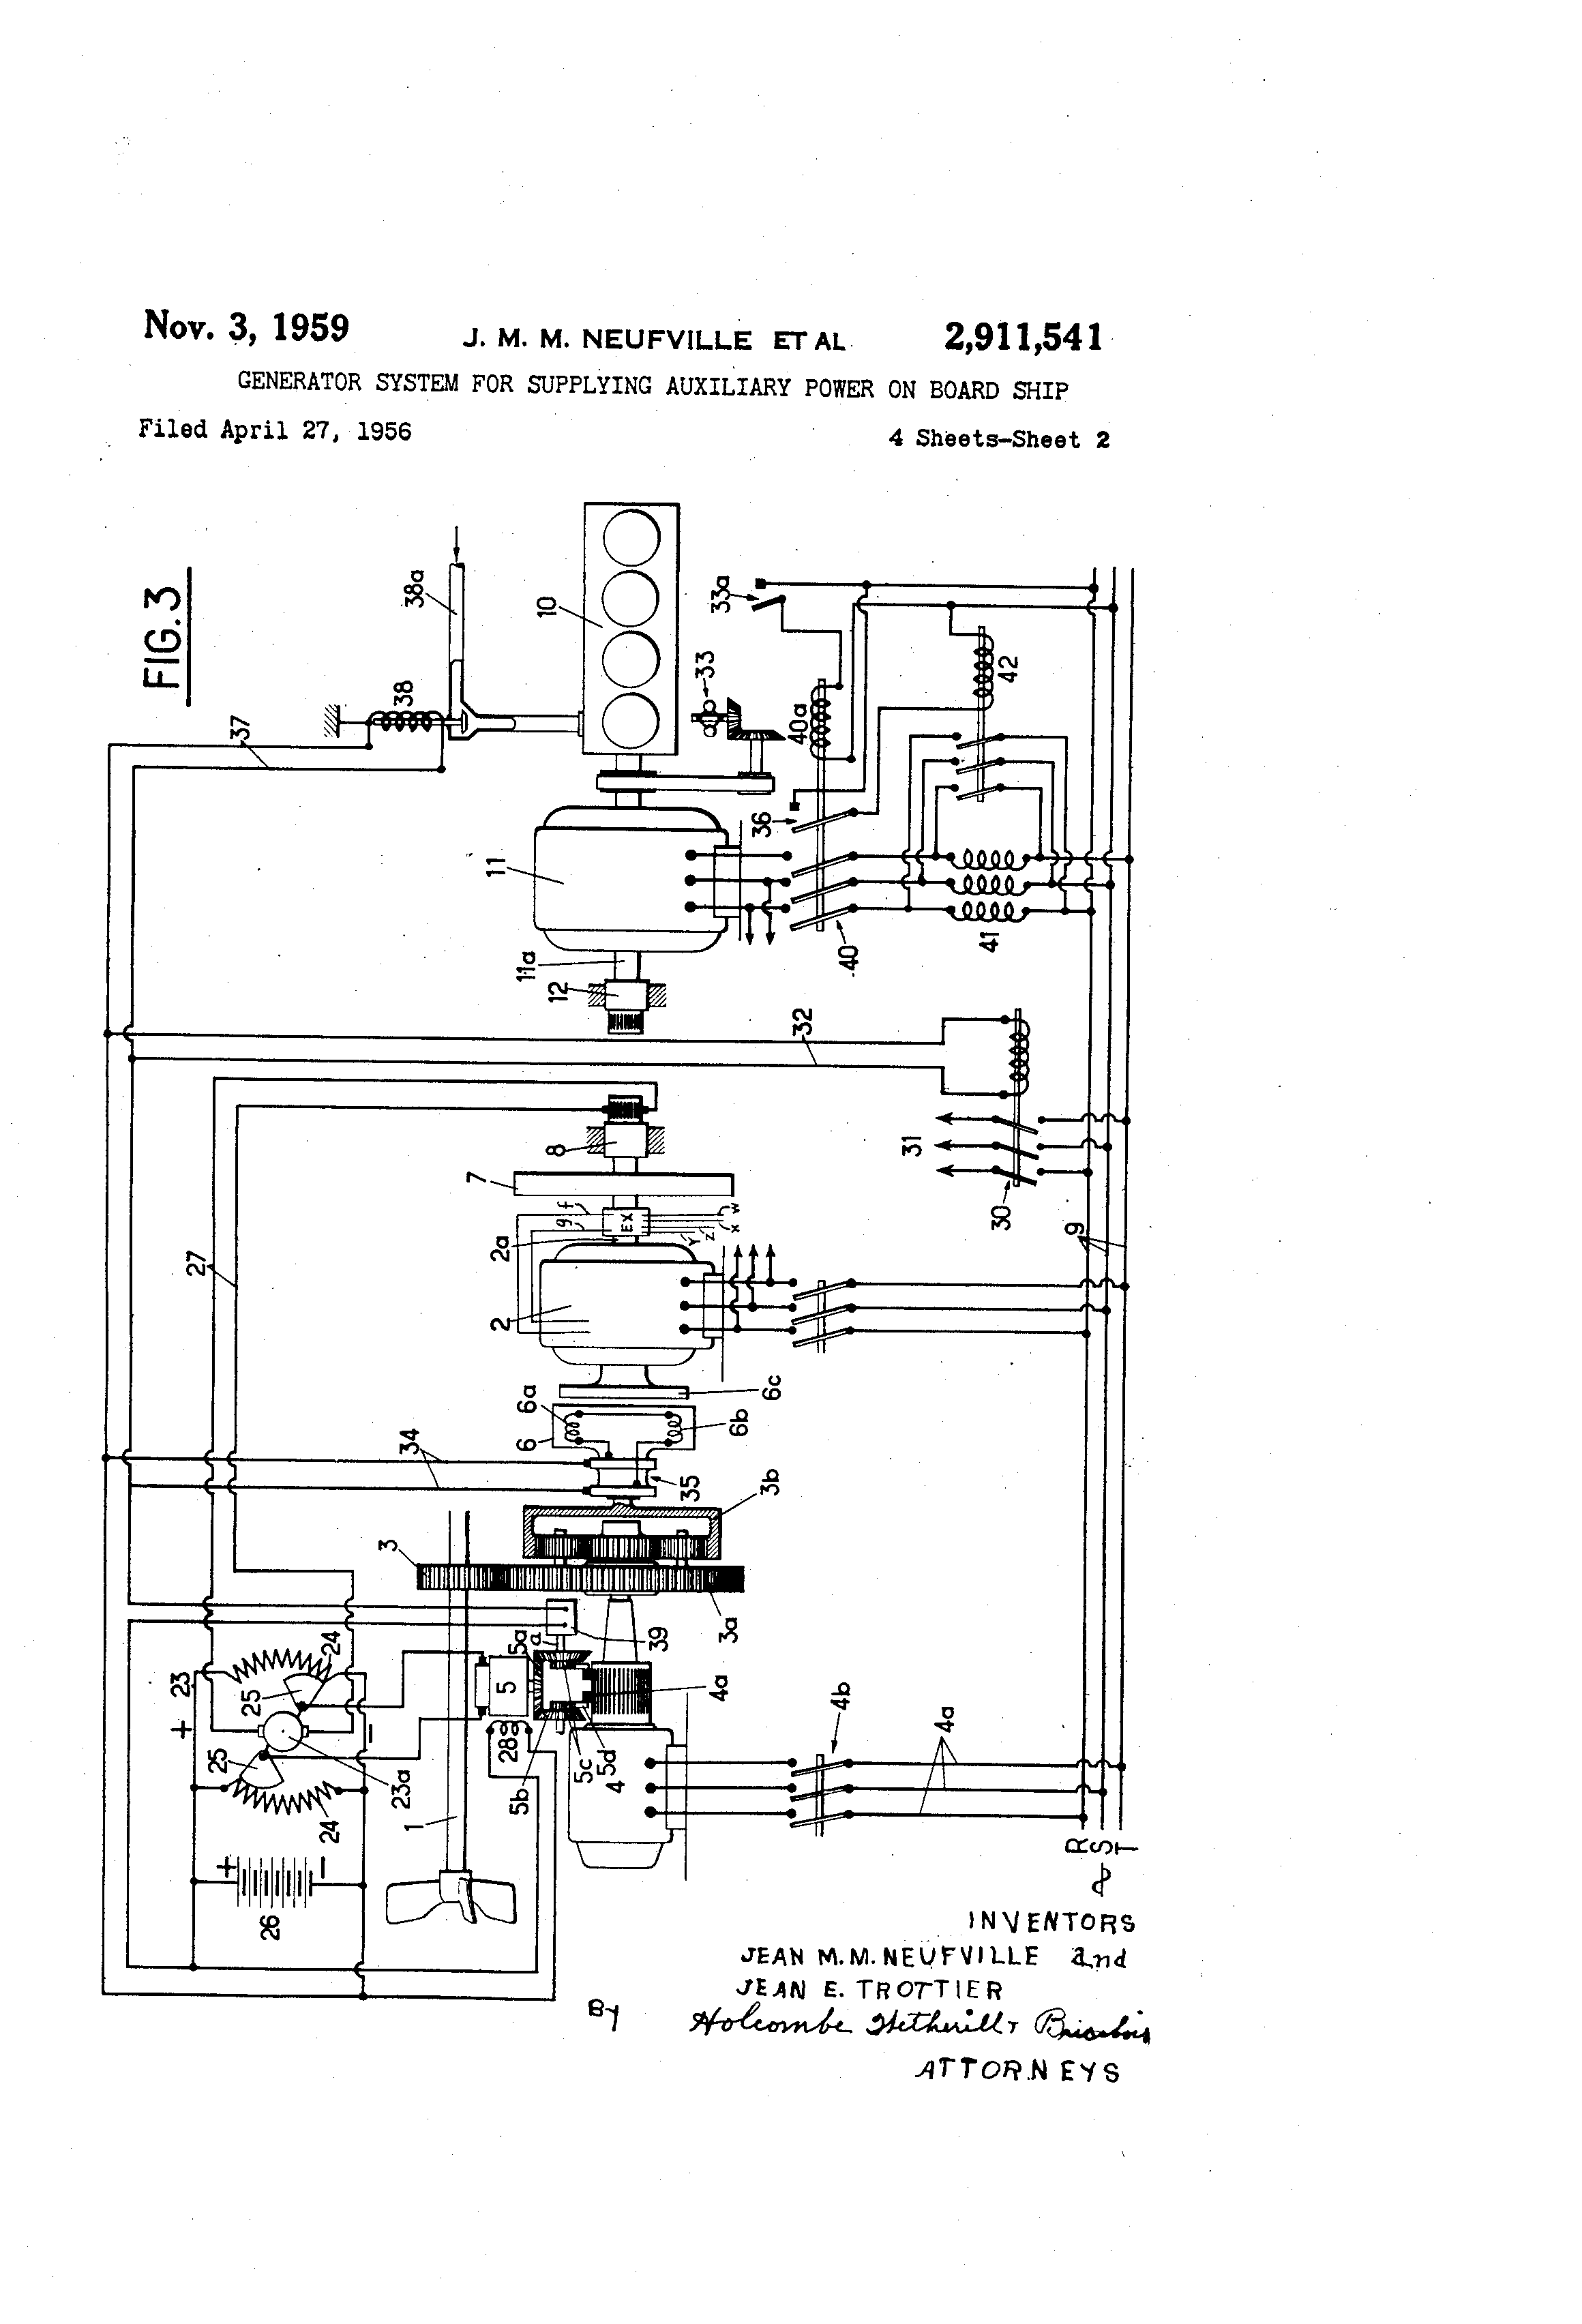 patent us2911541 - generator system for supplying auxiliary power on board ship